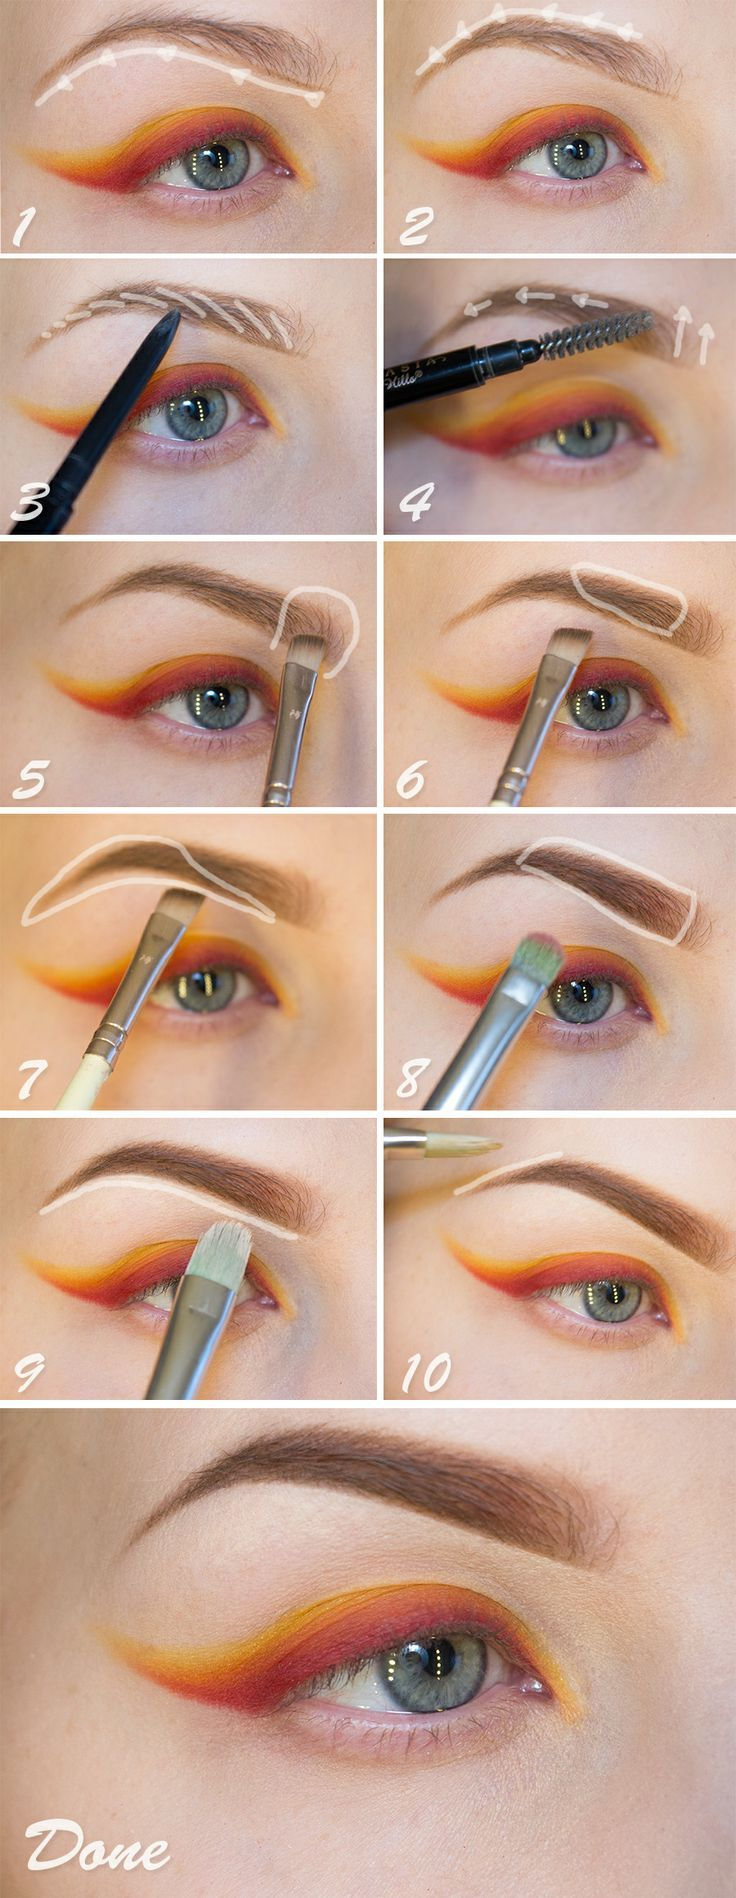 DIY Perfect Eyebrow in Detailed Steps